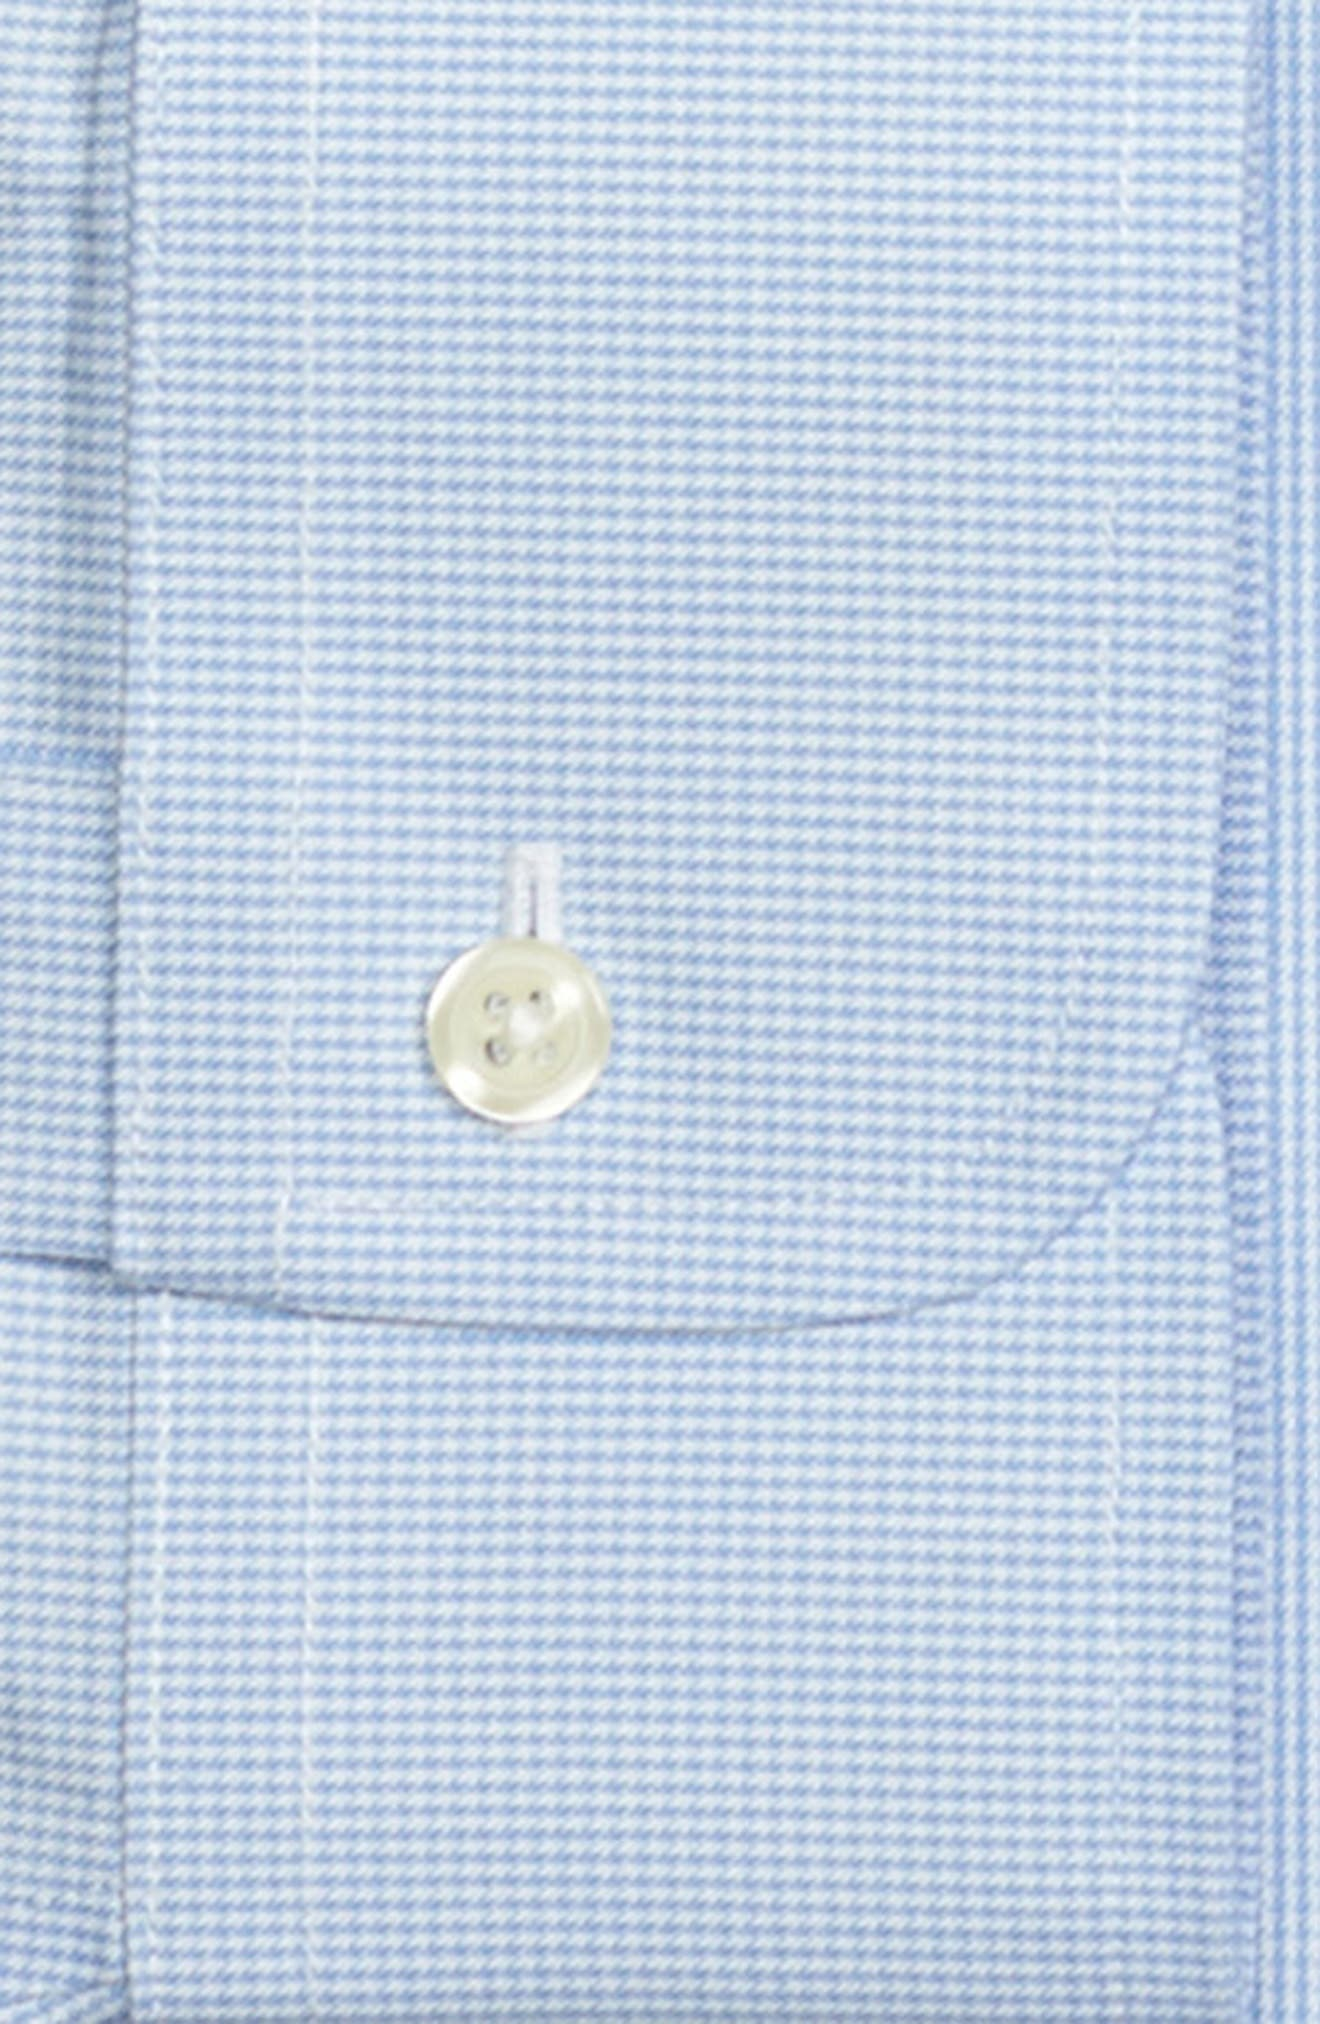 Trim Fit Houndstooth Dress Shirt,                             Alternate thumbnail 2, color,                             LIGHT/ PASTEL BLUE